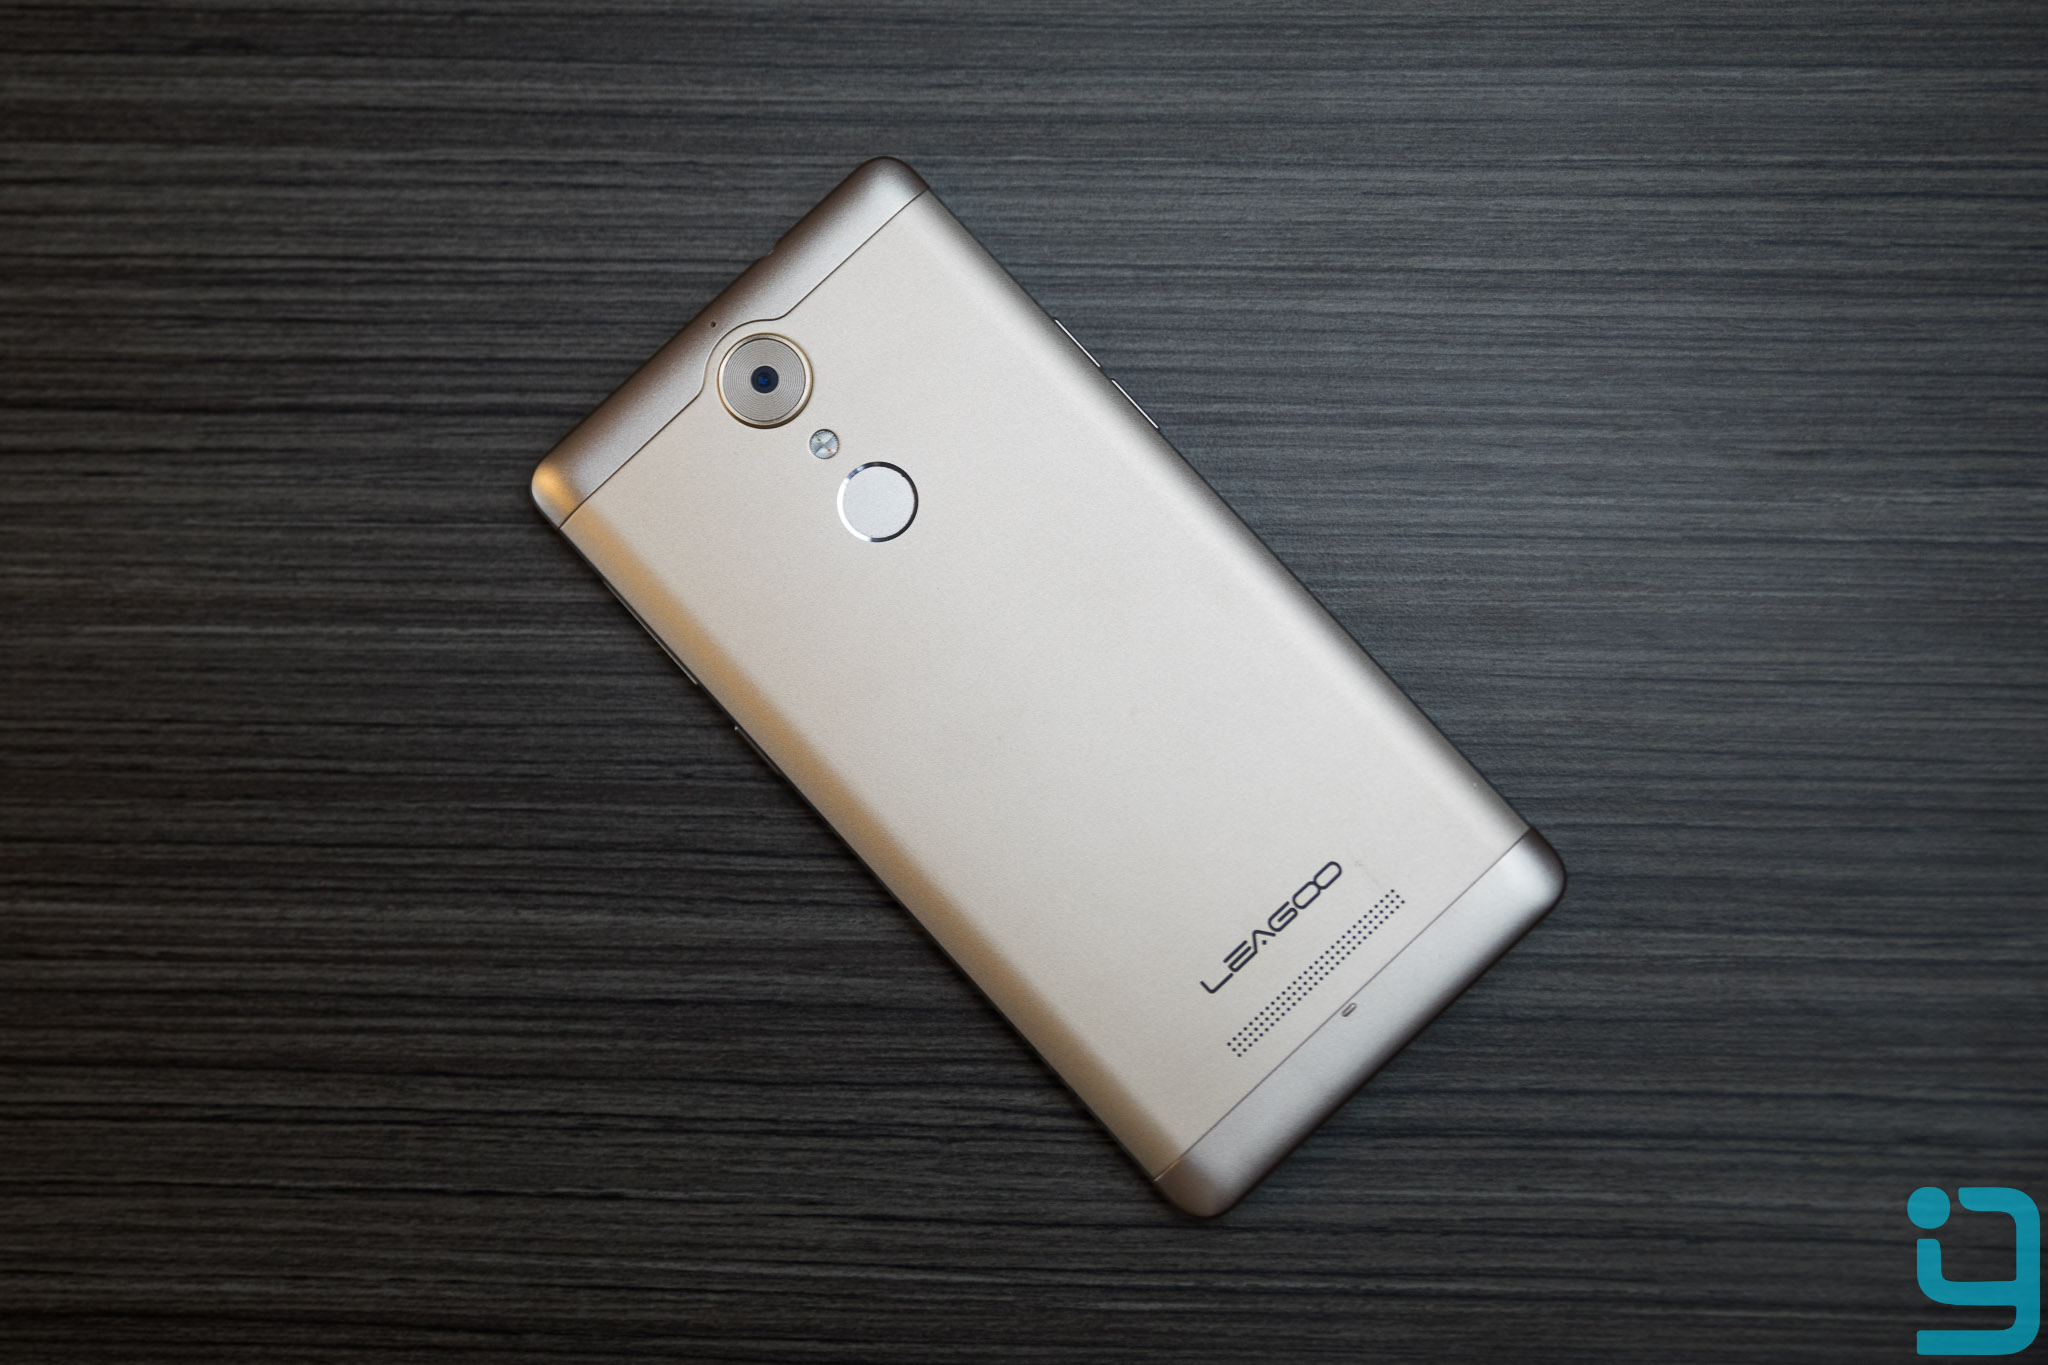 leagoo t1 design